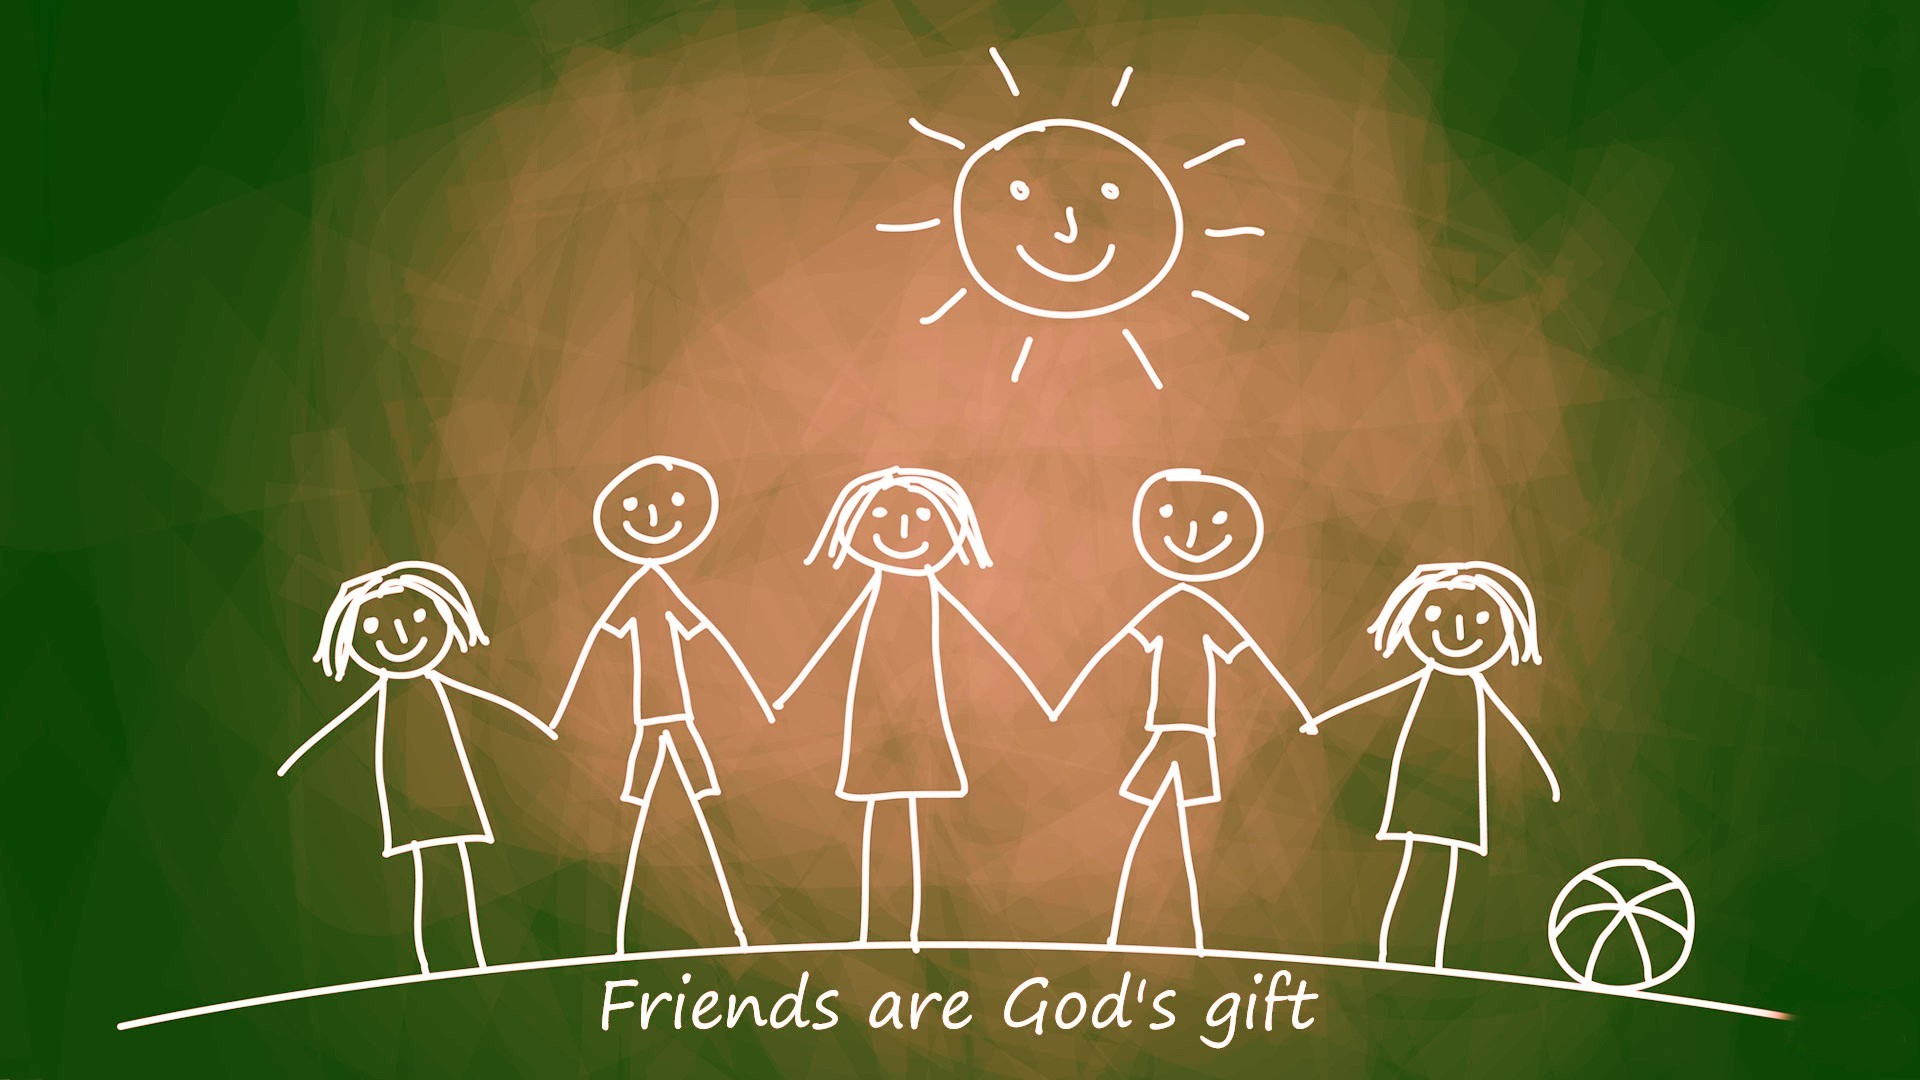 Friendship wallpapers 76 background pictures 1920x1370 friendship wallpapers with quotes free download hd friendship altavistaventures Image collections